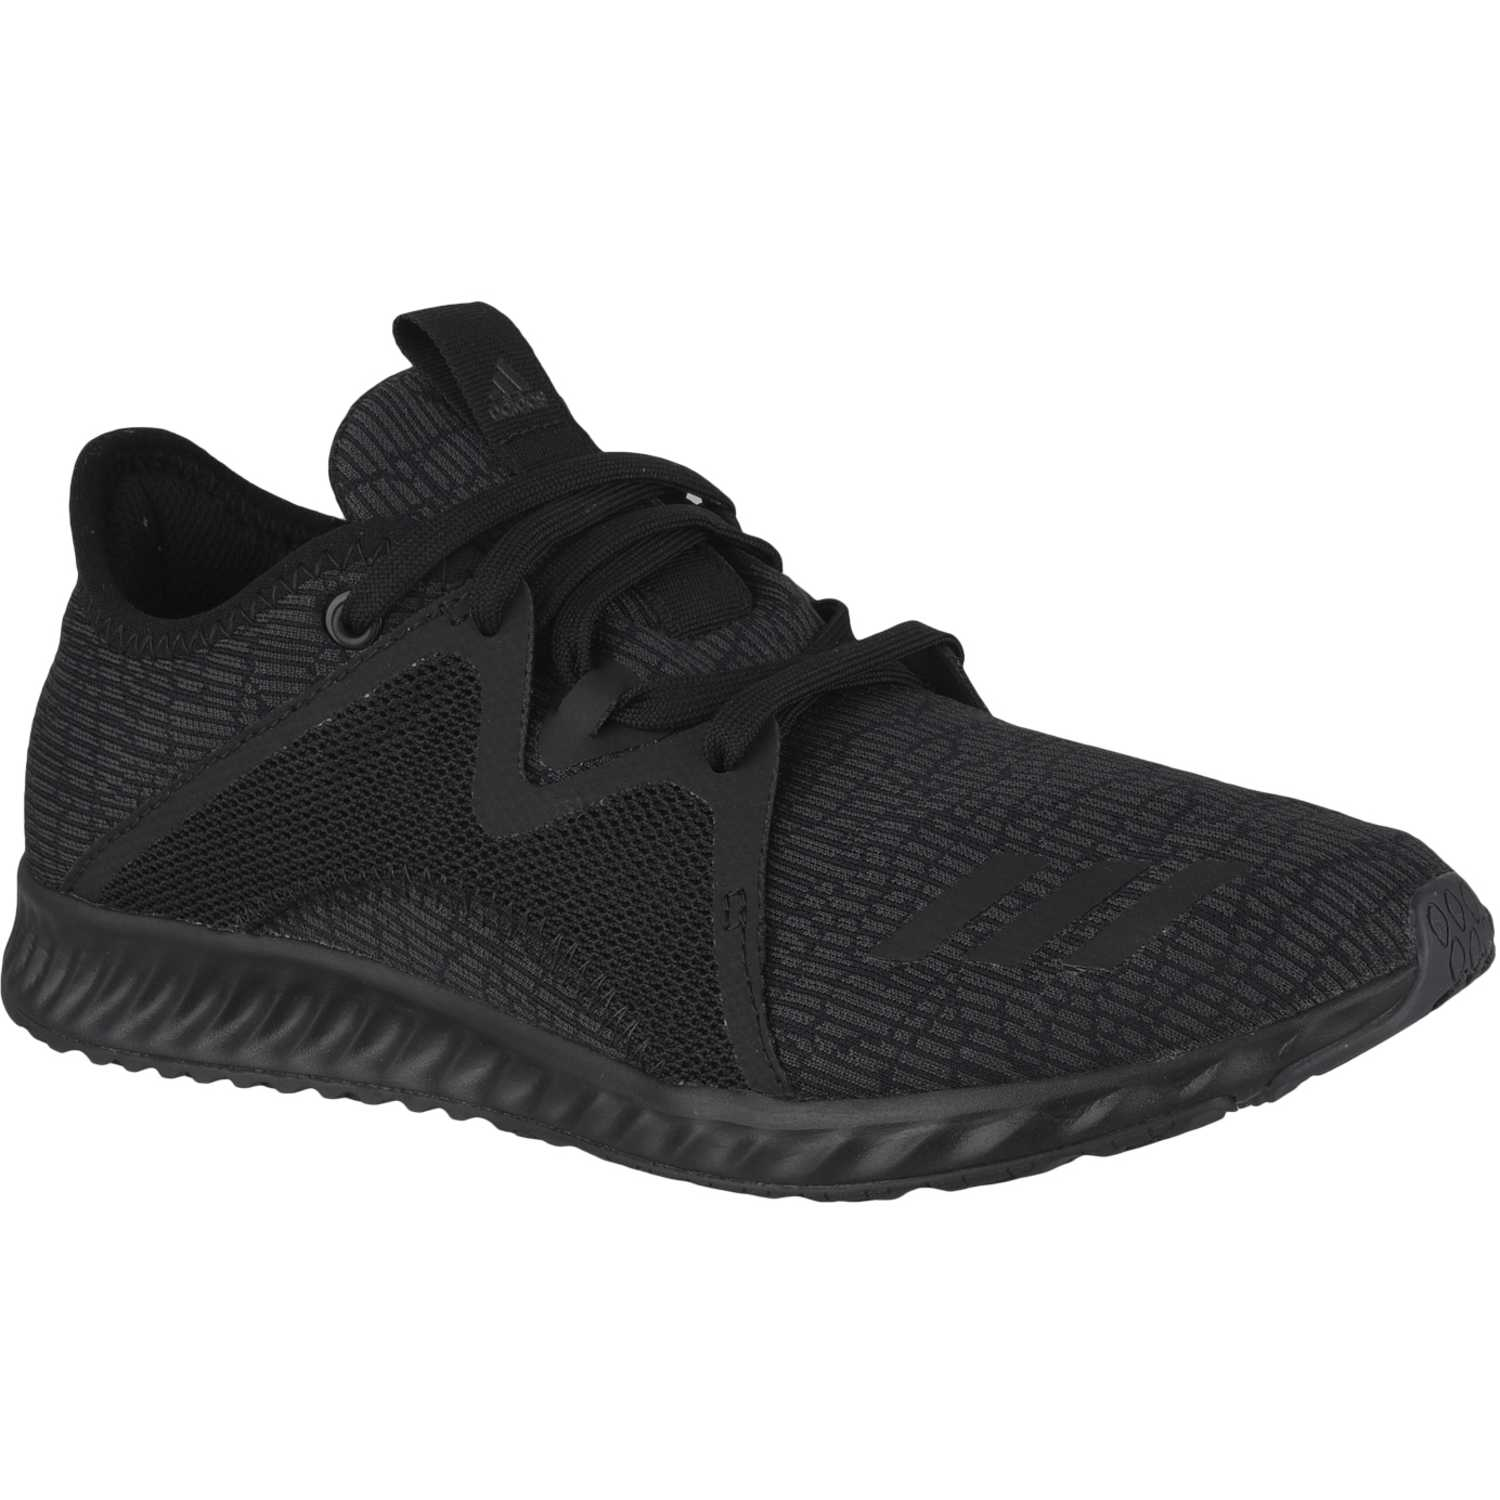 info for 97ade b47aa Zapatilla de Mujer Adidas Negro  gris edge lux 2 w